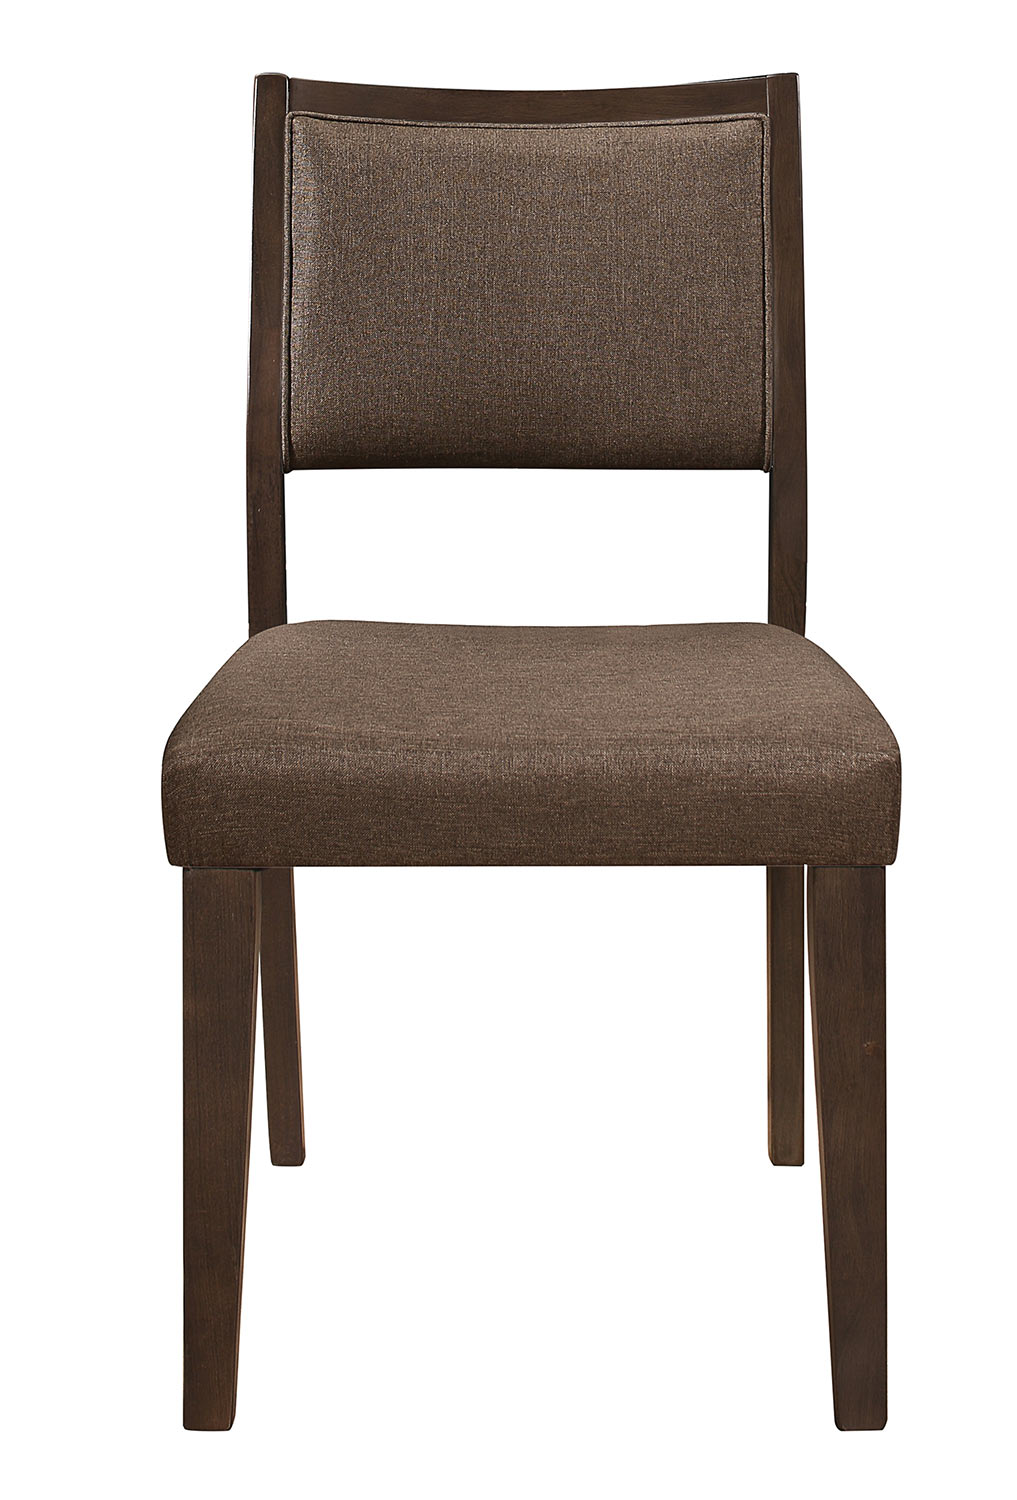 Homelegance Steer Side Chair - Walnut 2-Tone